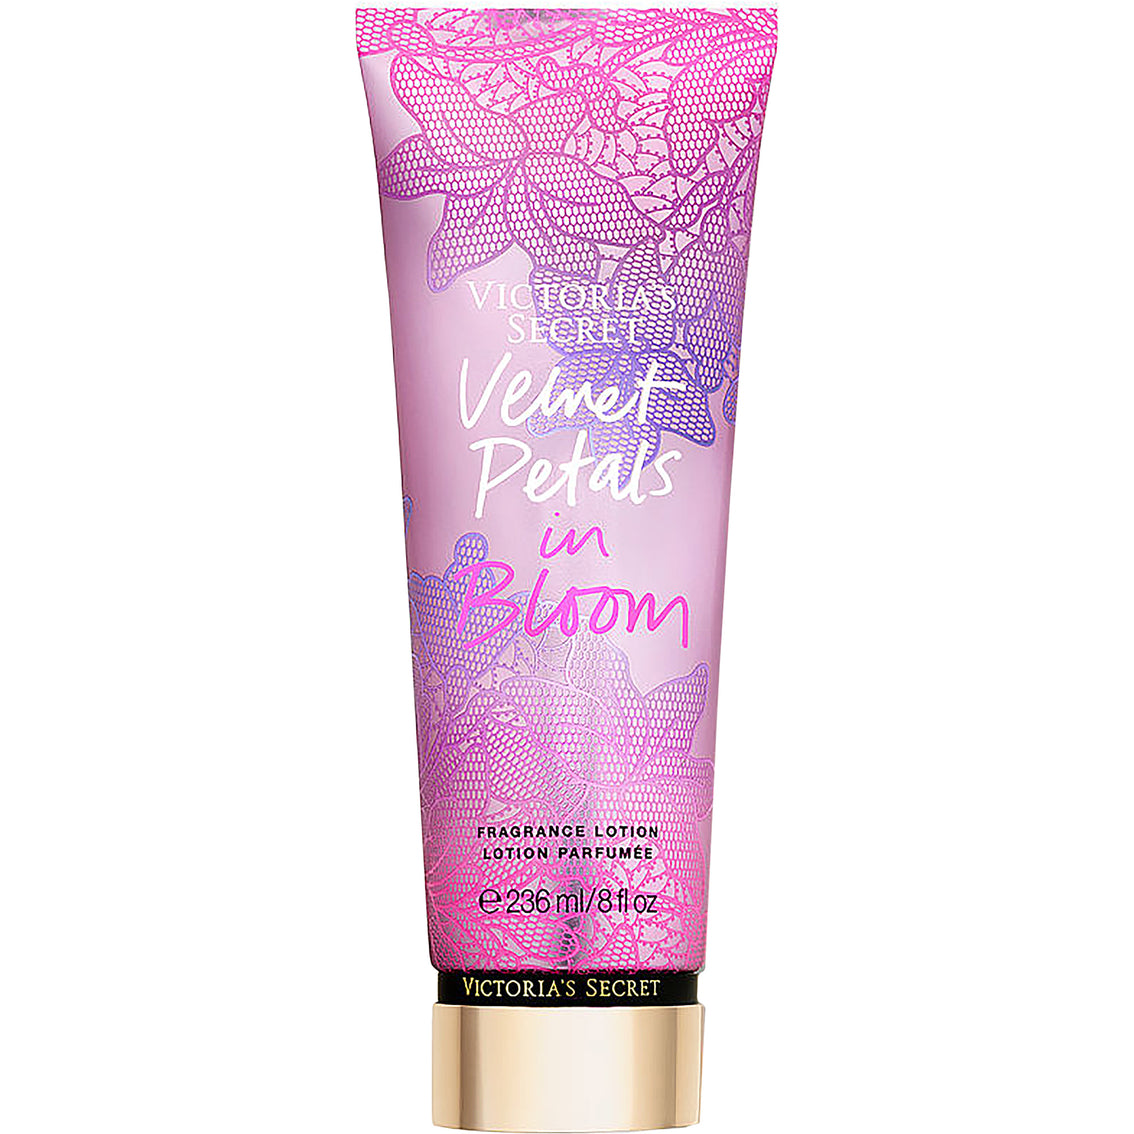 VELVET PETALS IN BLOOM BODY LOTION 236 ML - VICTORIA'S SECRET